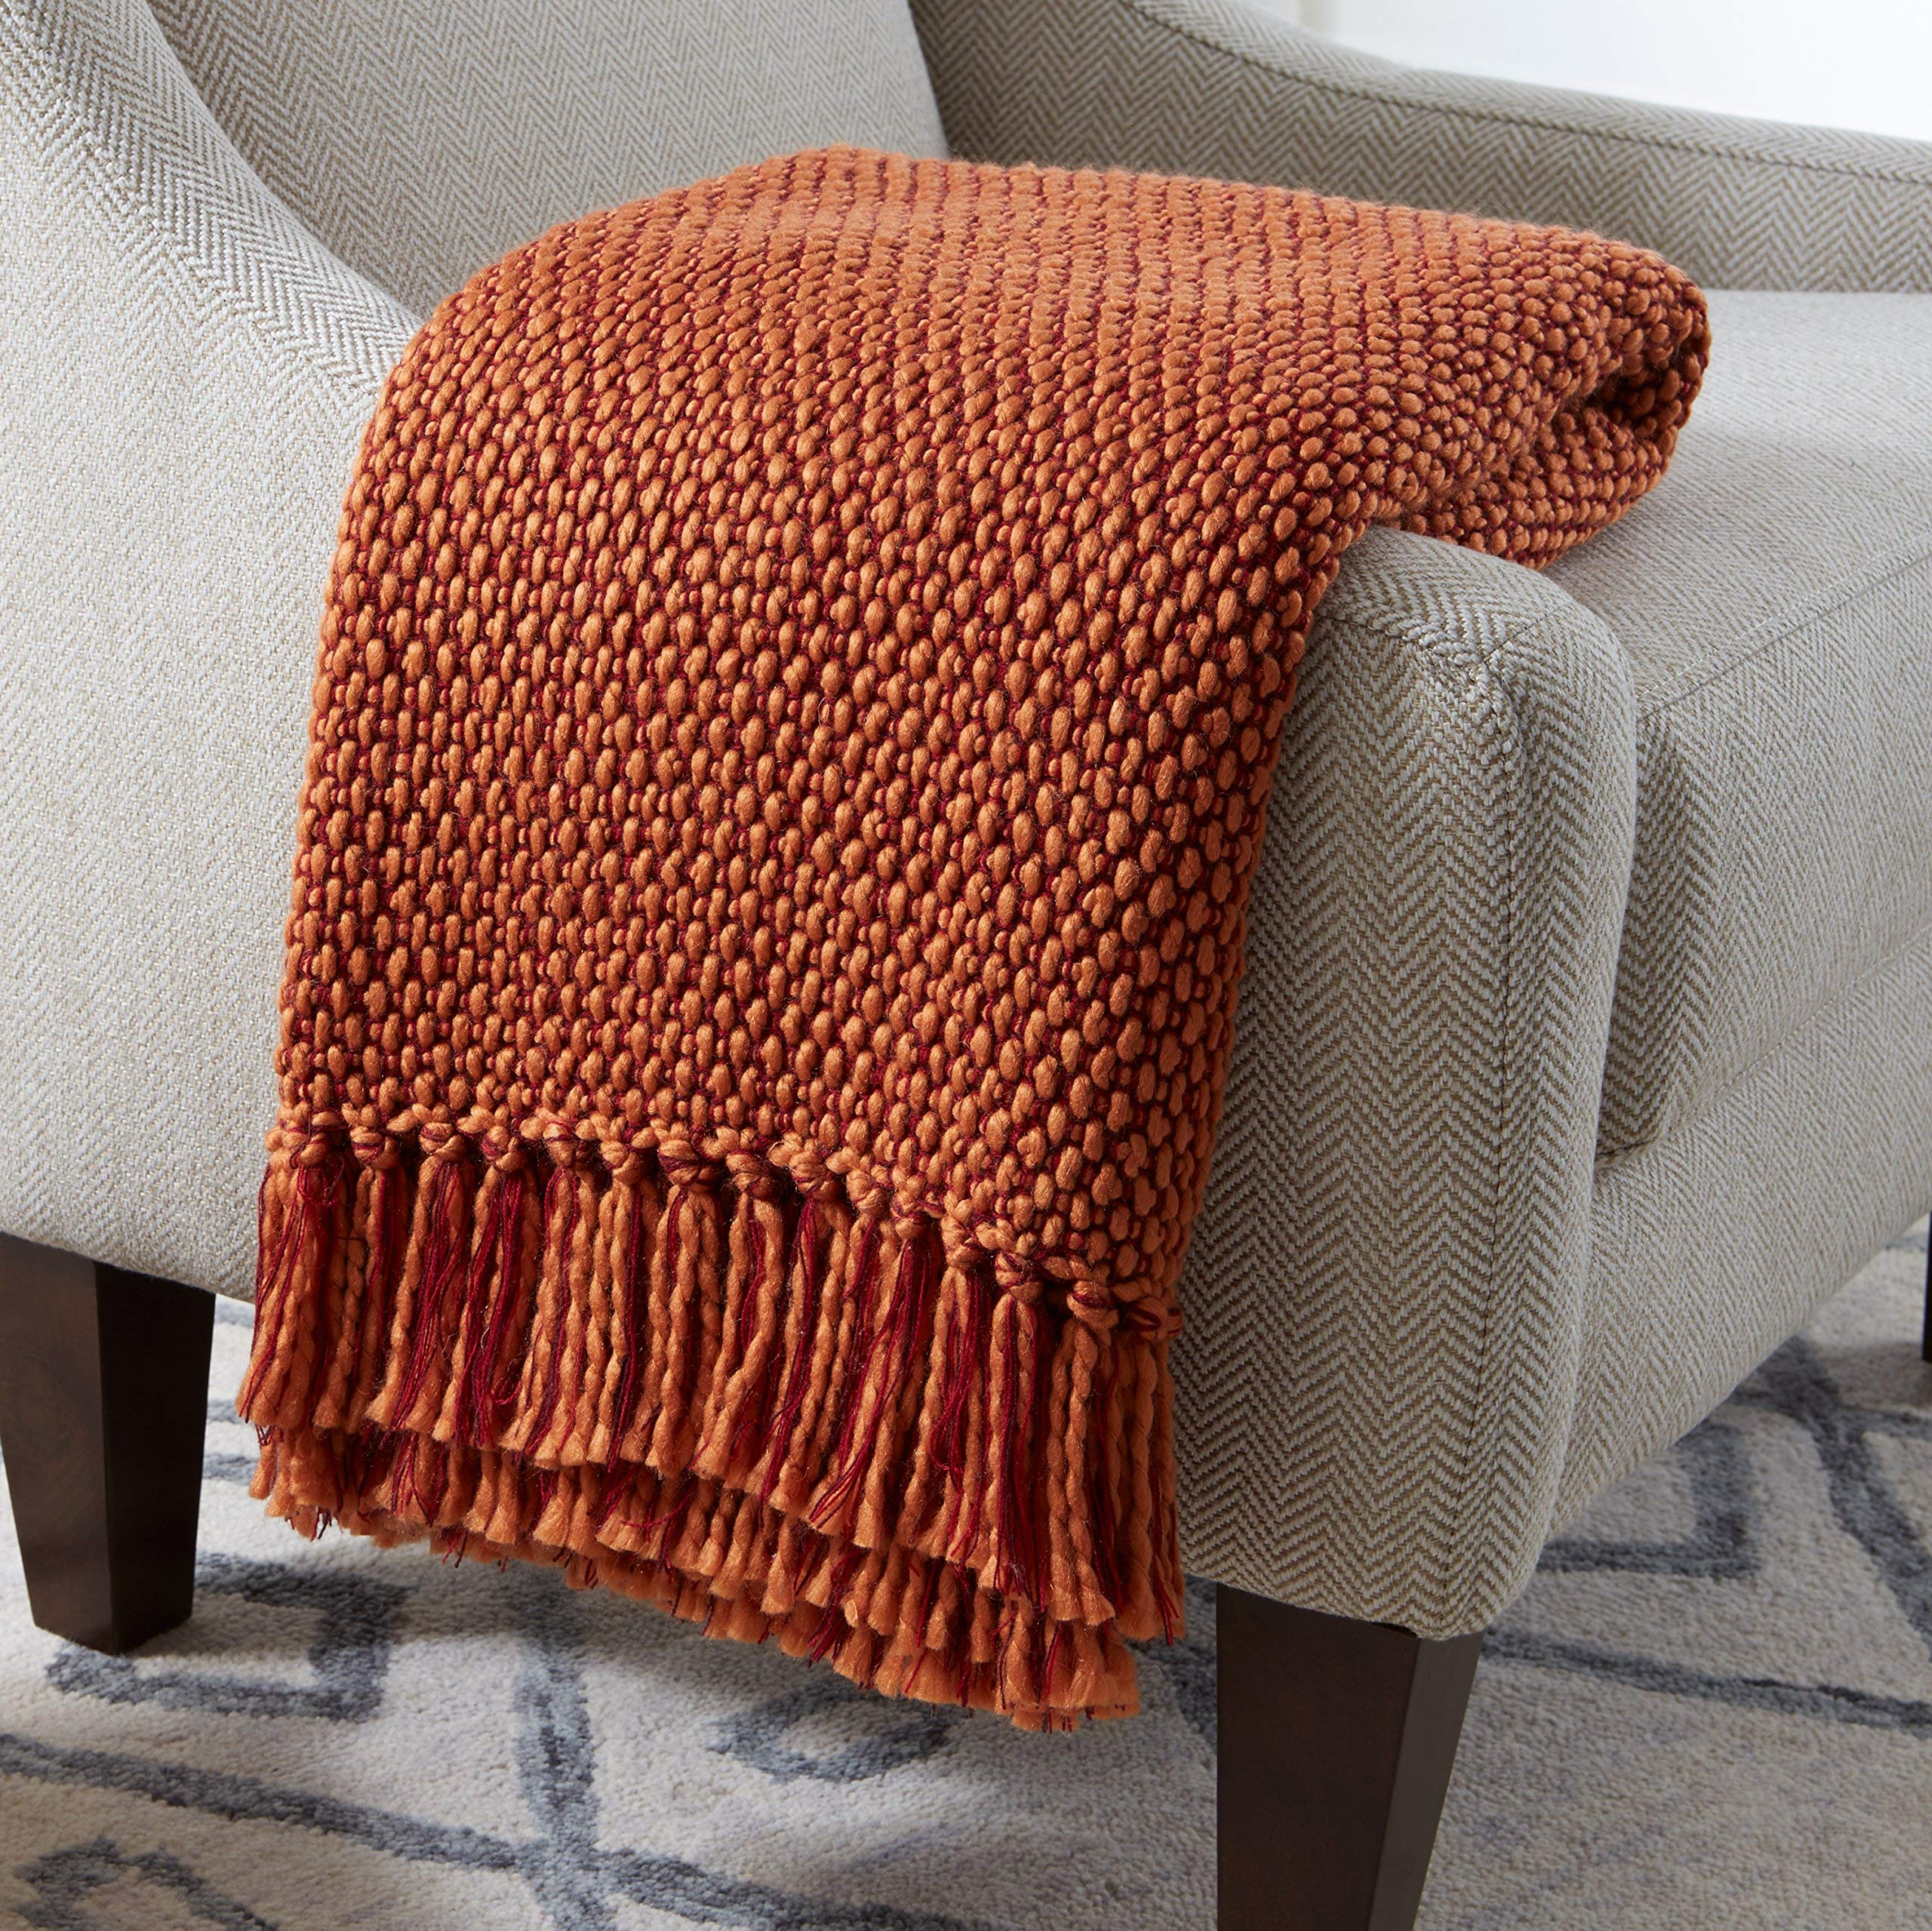 Stone & Beam Modern Woven Farmhouse Throw Blanket, Soft and Cozy, 50'' x 60'', Orange and Red by Stone & Beam